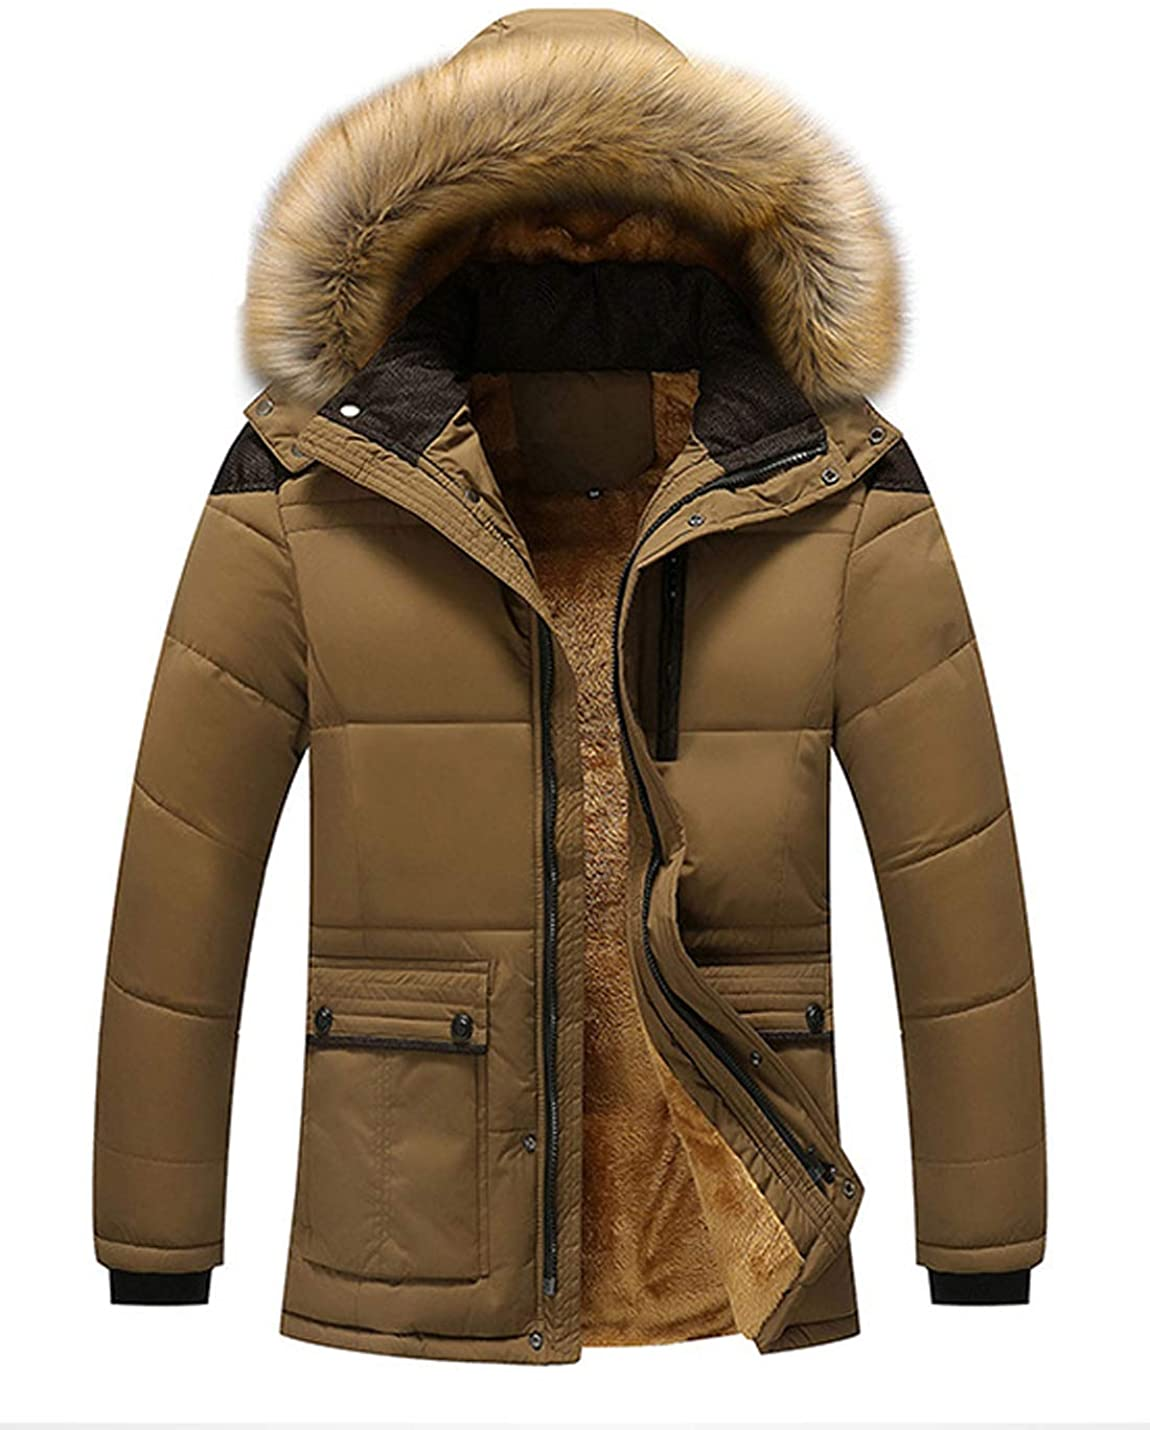 Flygo Mens Winter Warm Sherpa Lined Quilted Parka Jacket with Removable Fur Hood